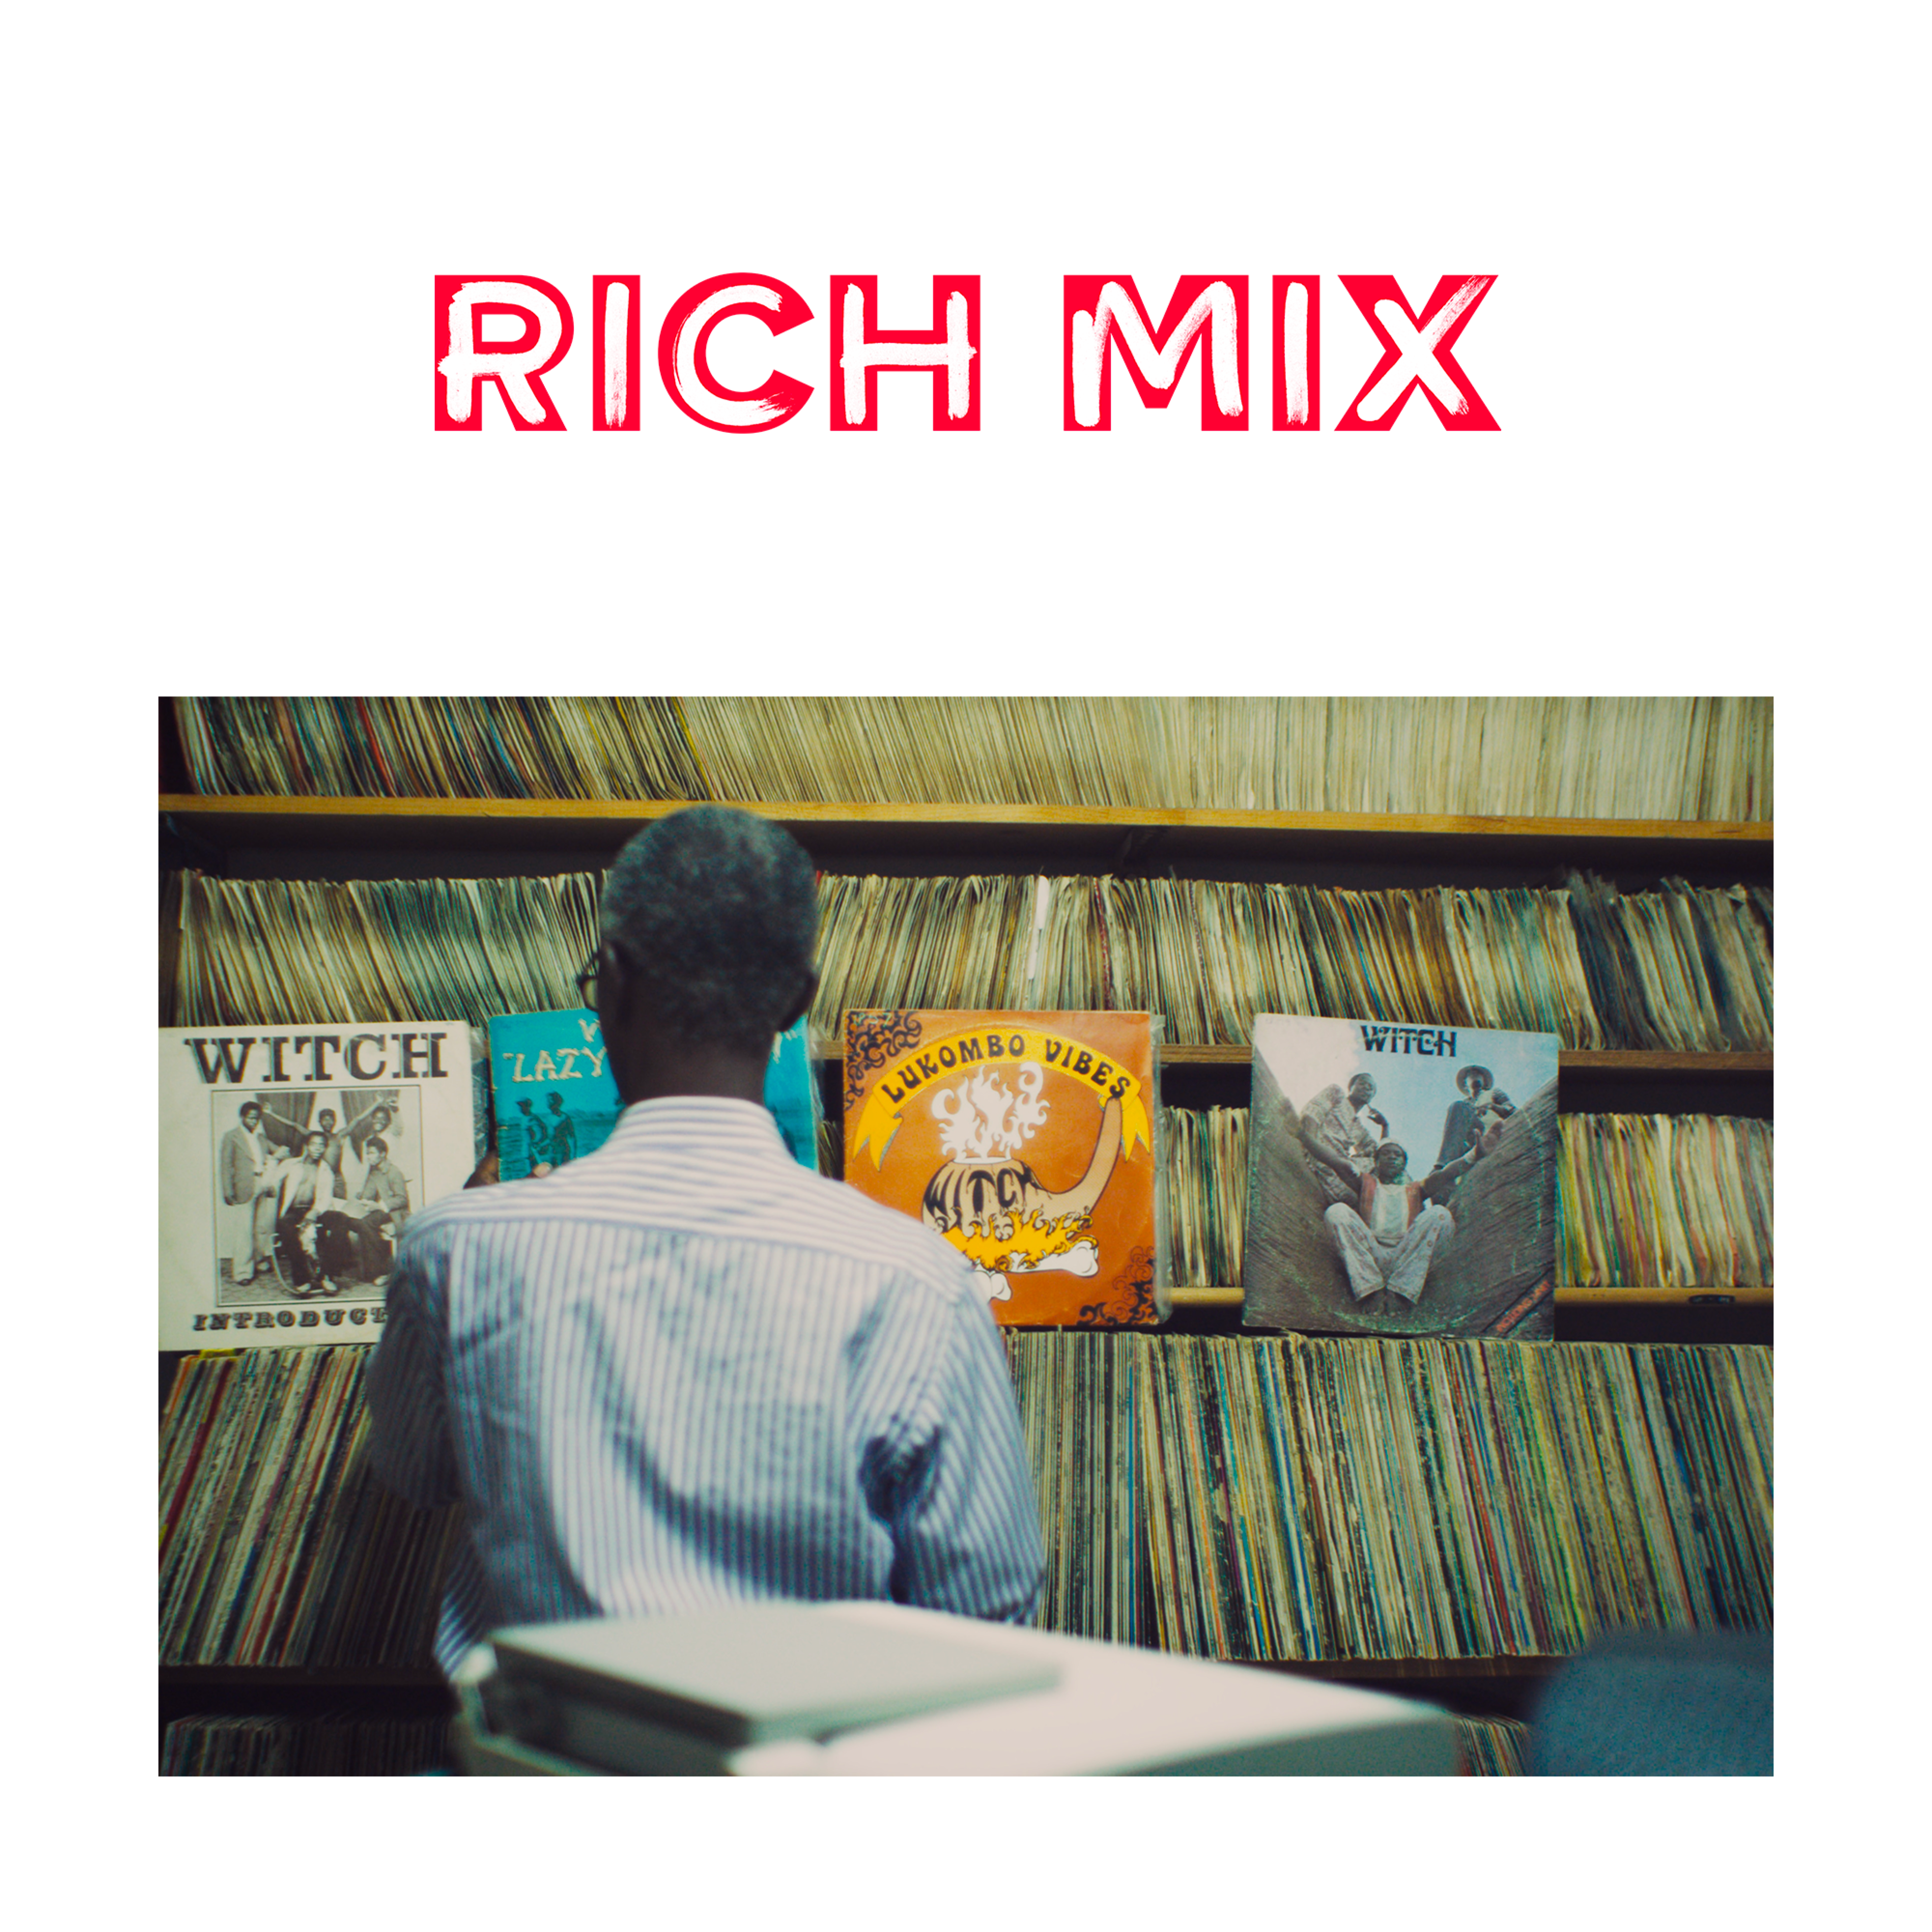 WITCH: We Intend to Cause Havoc at Rich Mix